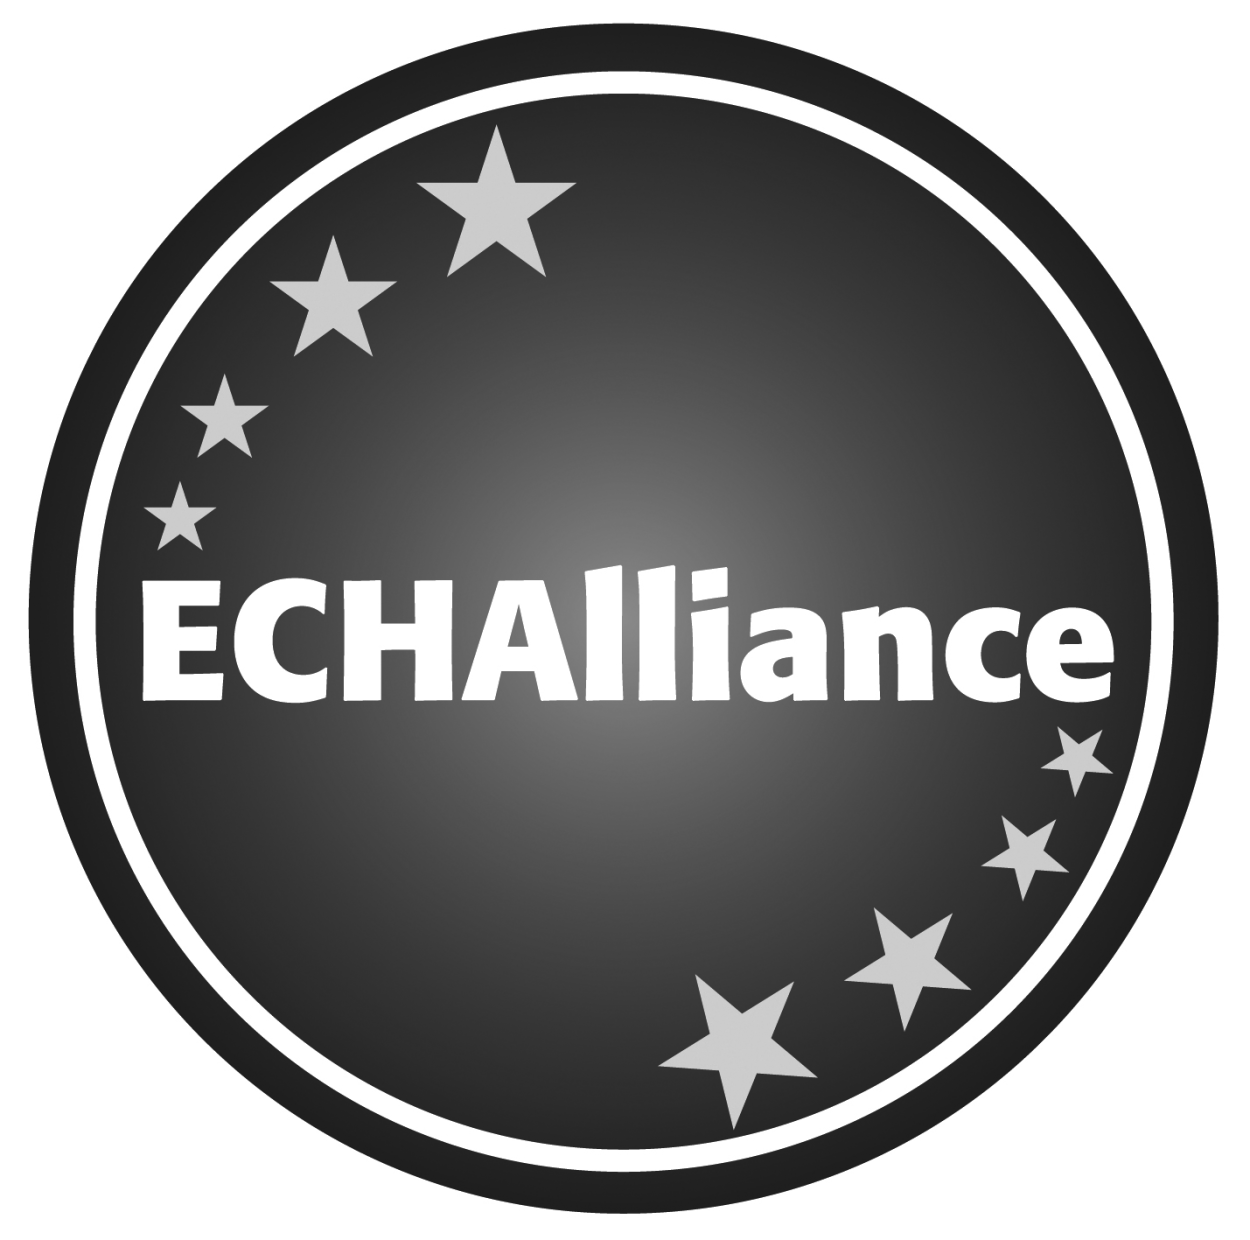 https://echalliance.site-ym.com/